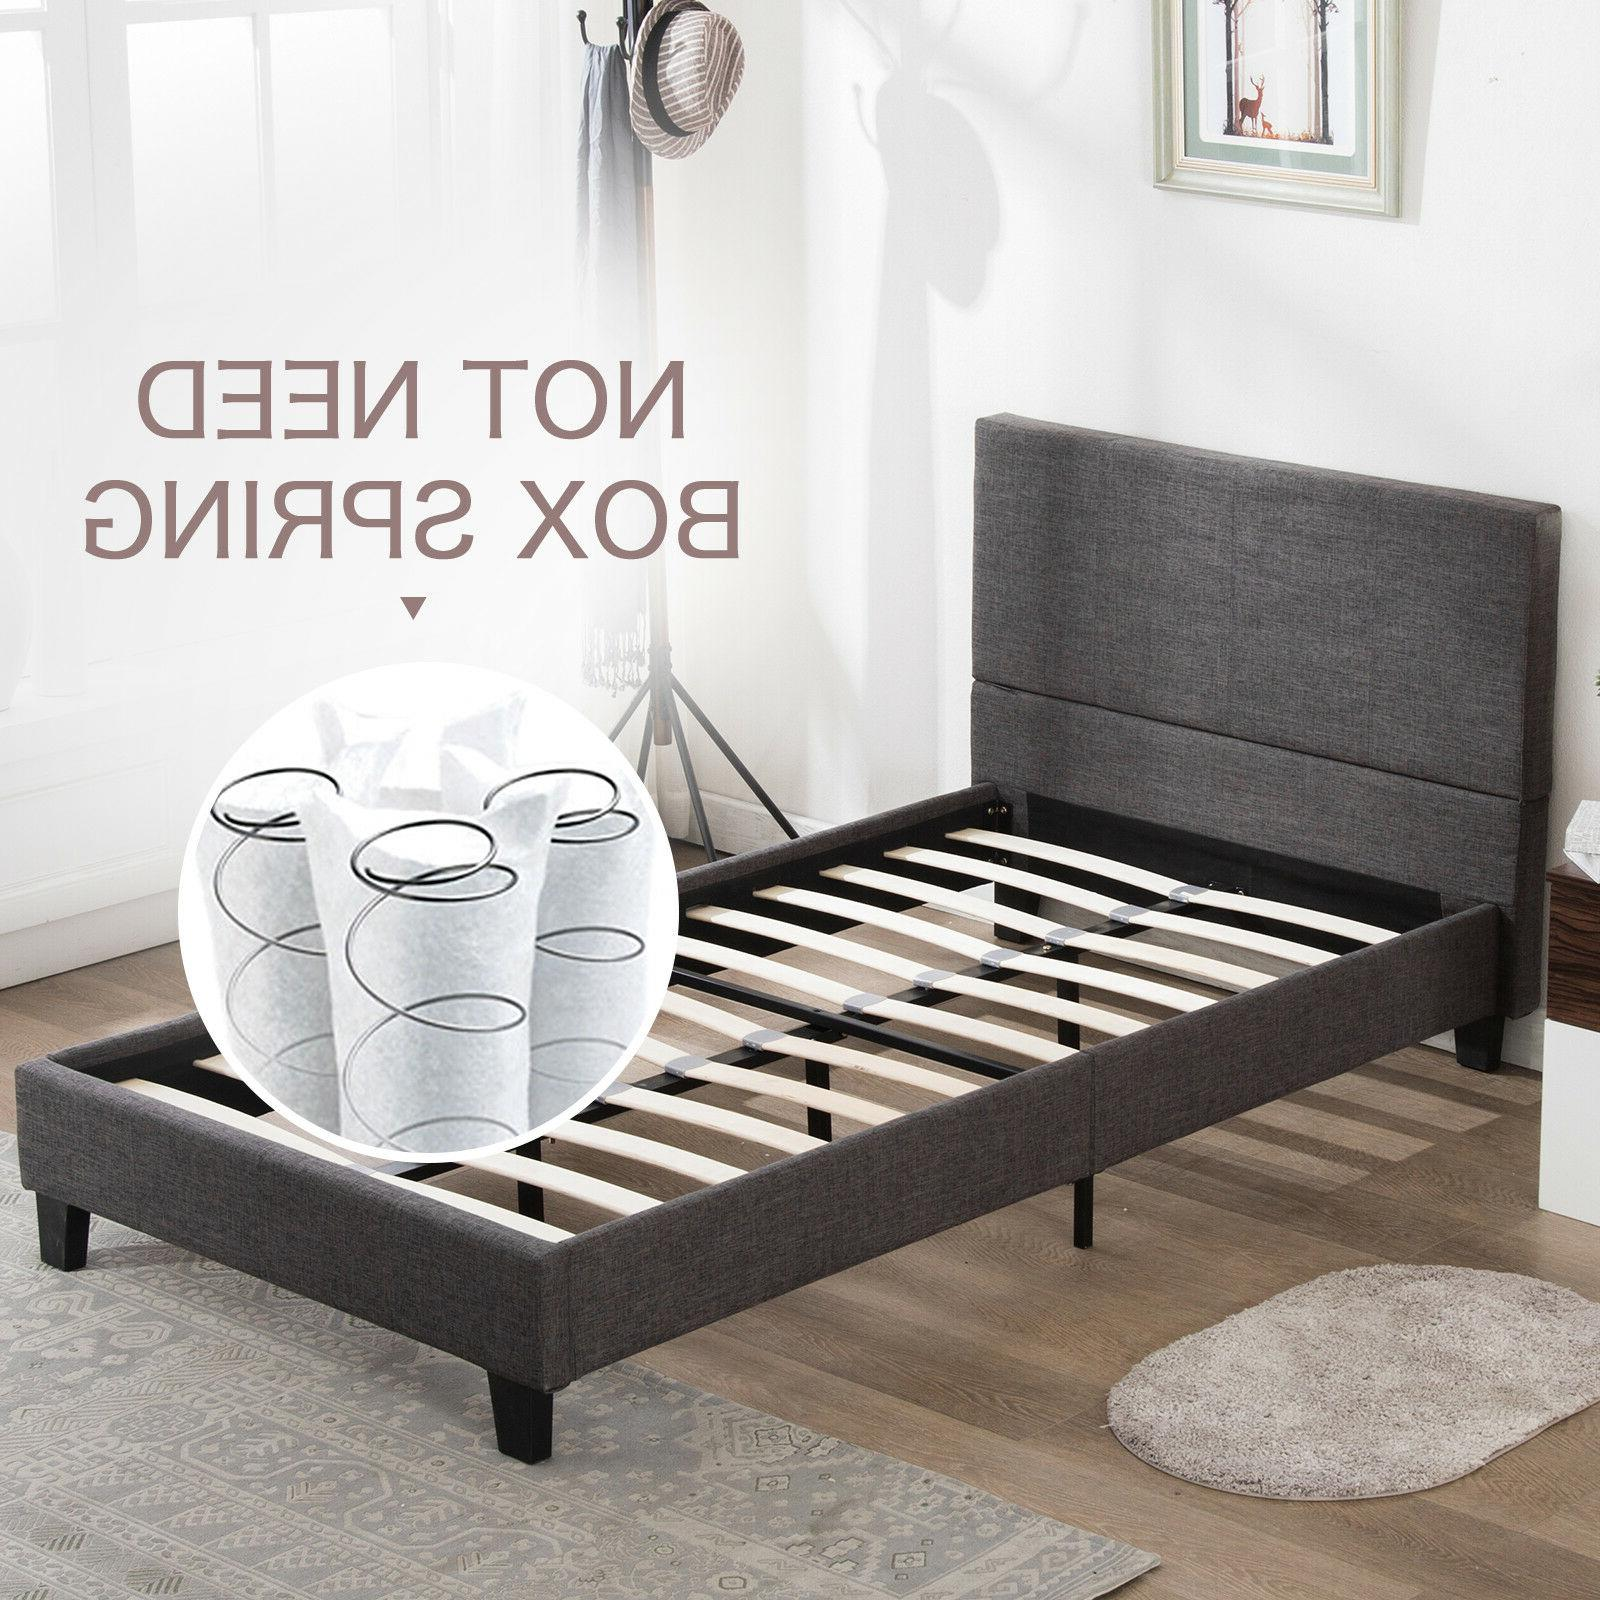 Twin/Full/Queen Size Bed Frame w/Wood Slats